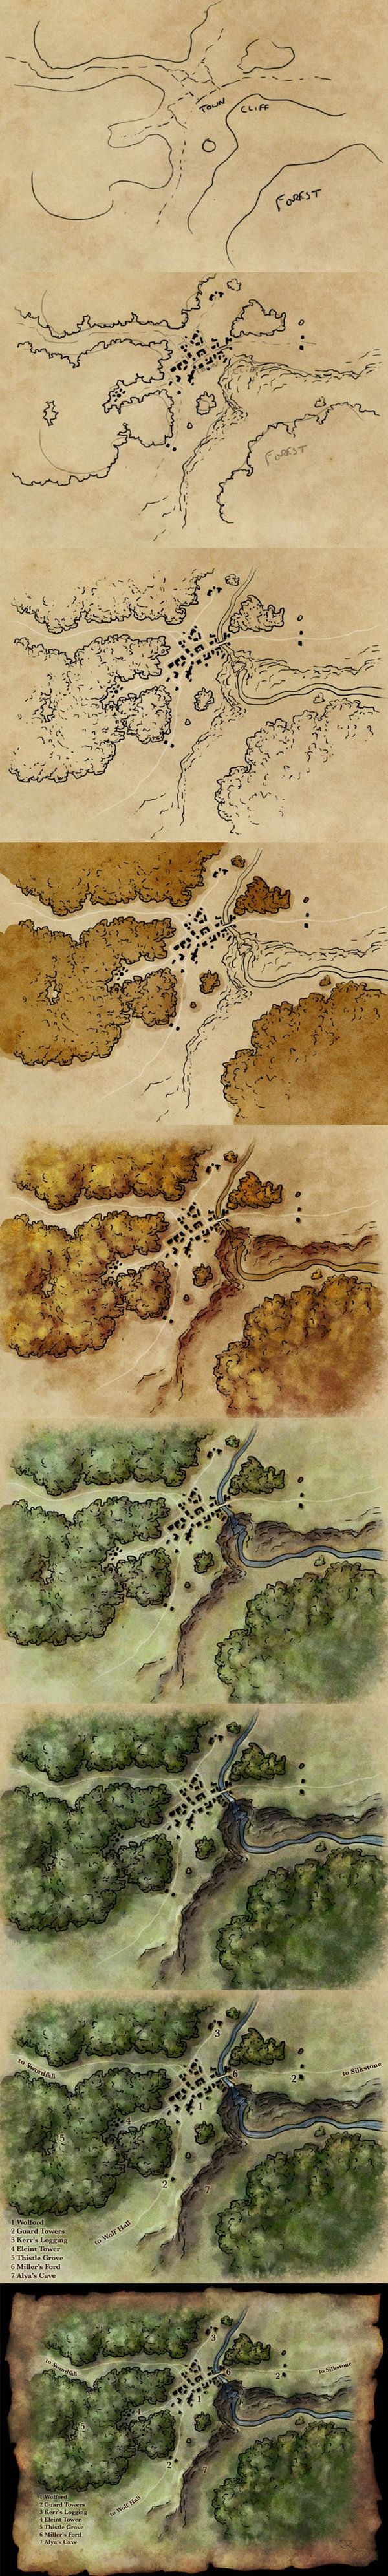 How to draw a map by torstan cartography resource tool how to tutorial instructions | Create your own roleplaying game material w/ RPG Bard: www.rpgbard.com | Writing inspiration for Dungeons and Dragons DND D&D Pathfinder PFRPG Warhammer 40k Star Wars Shadowrun Call of Cthulhu Lord of the Rings LoTR + d20 fantasy science fiction scifi horror design | Not Trusty Sword art: click artwork for source